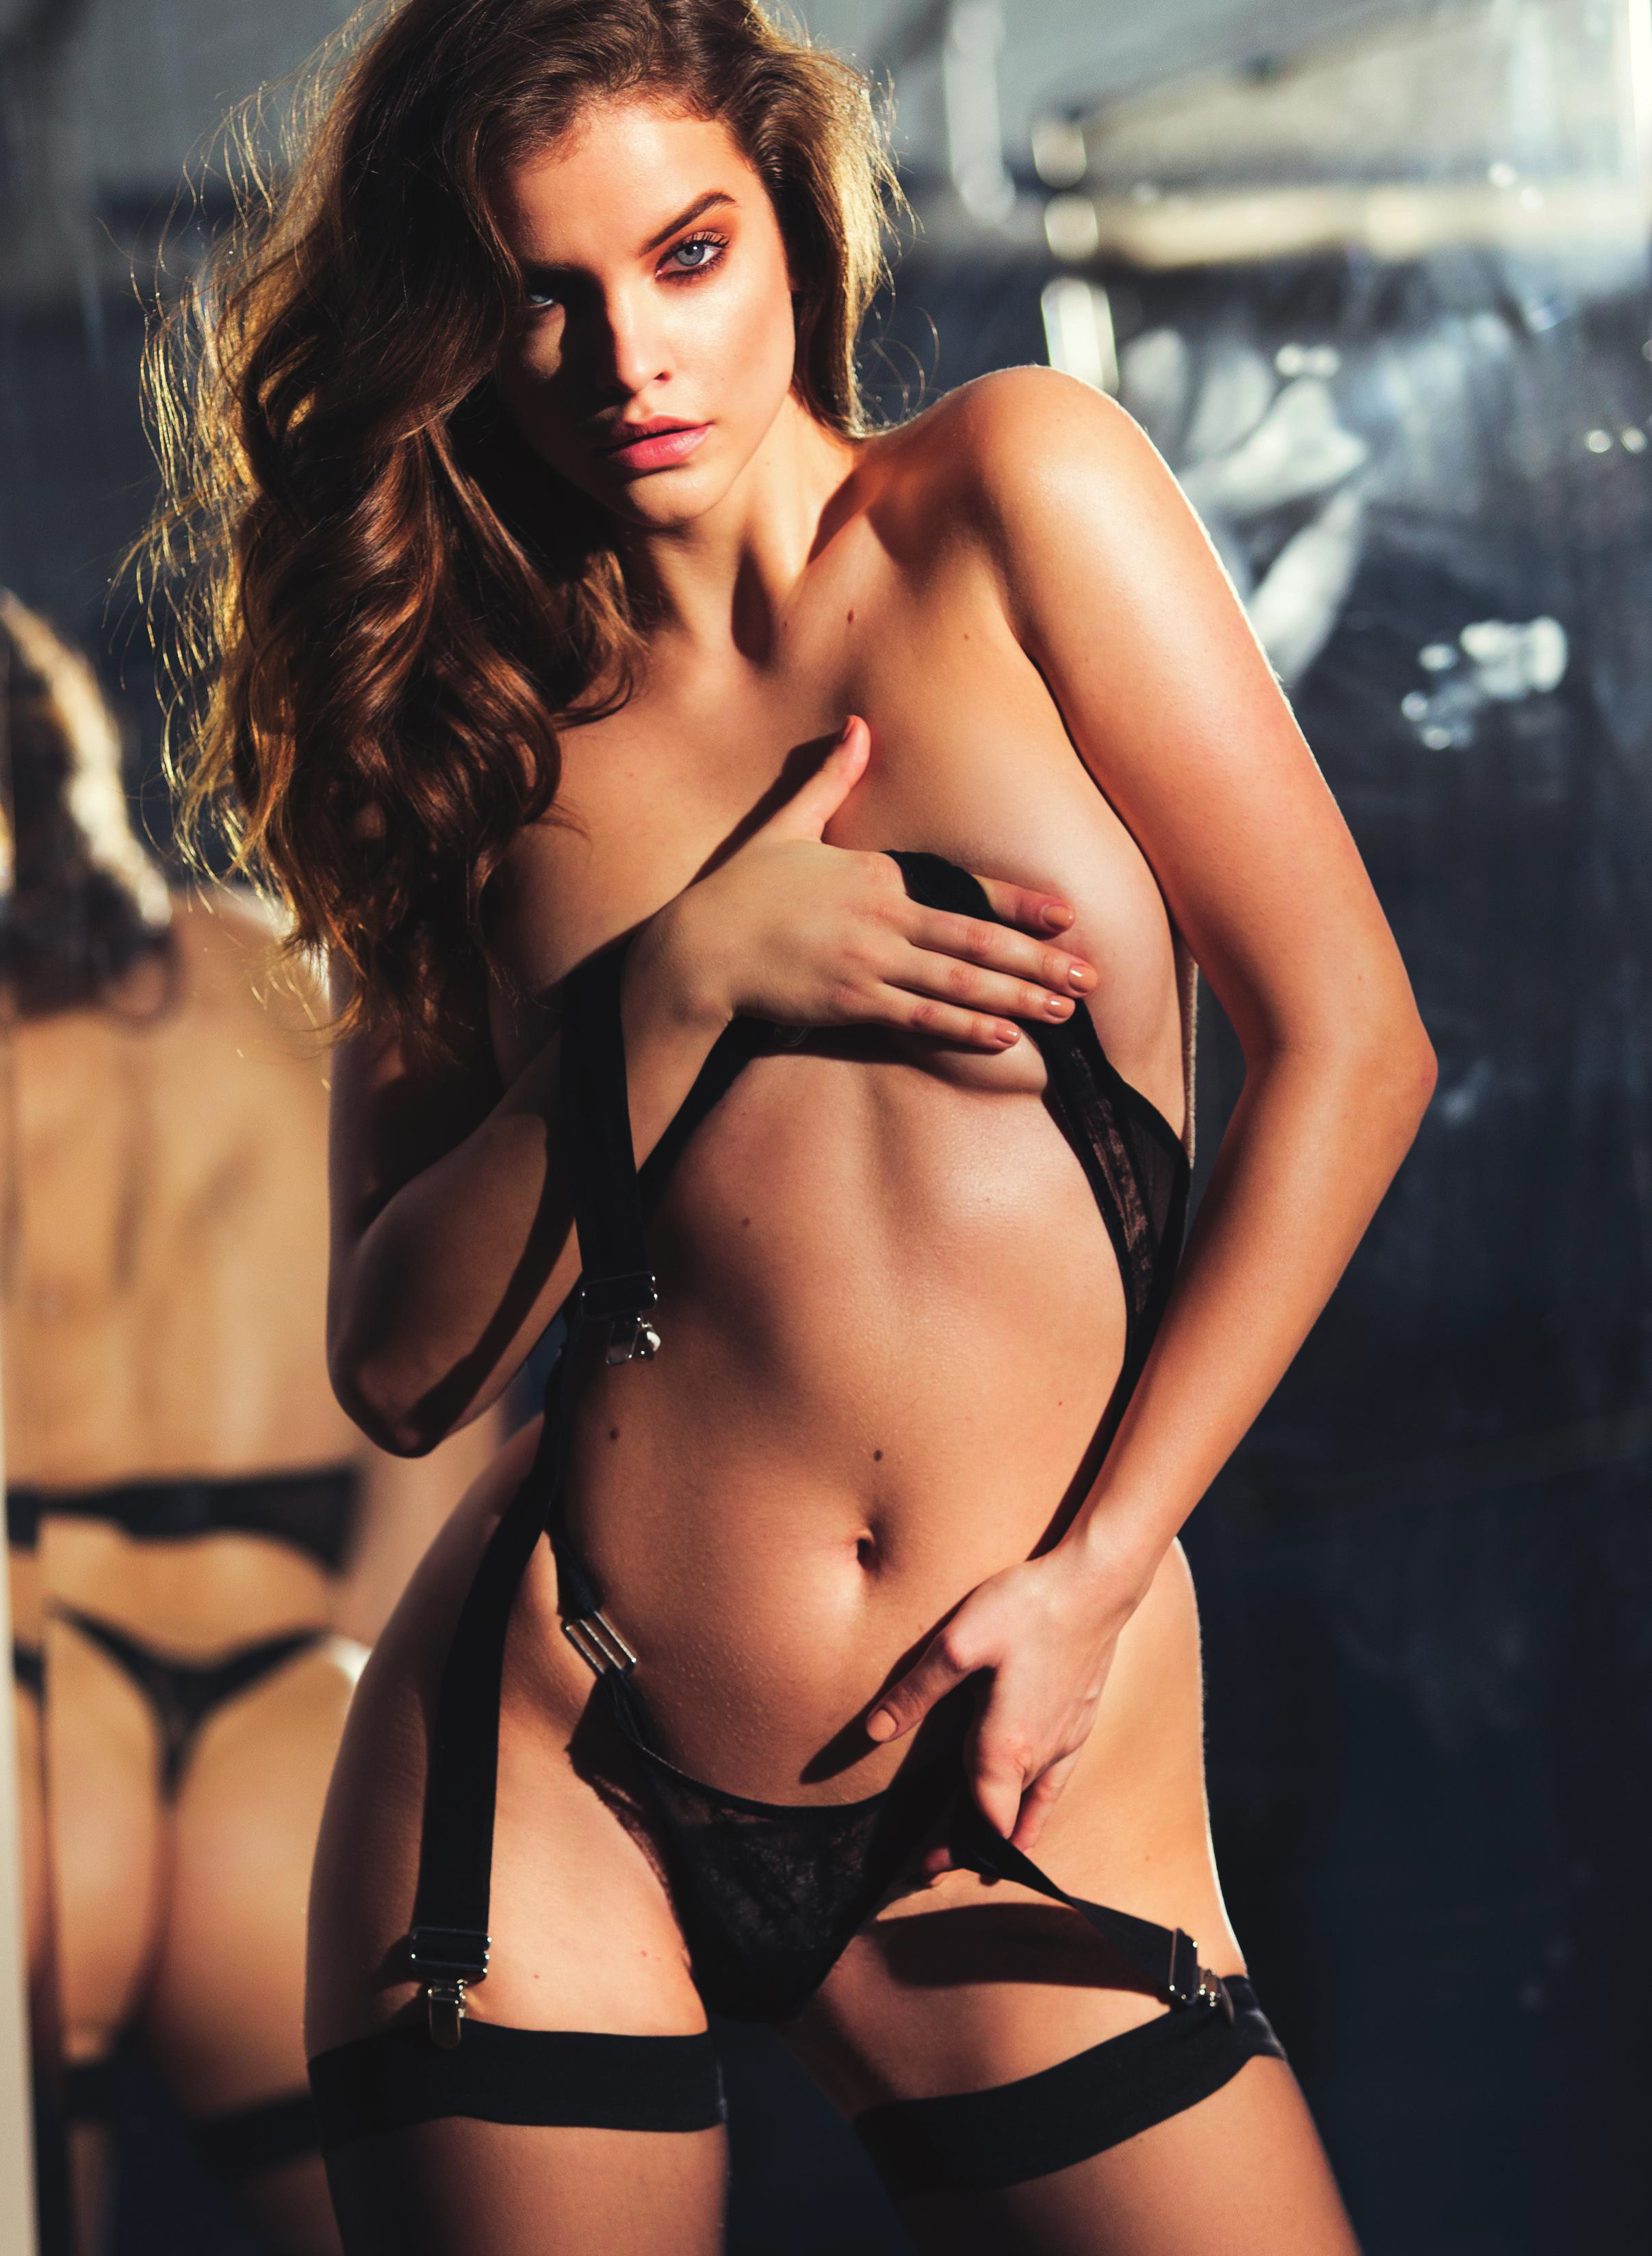 Holly parker shemale model XXX